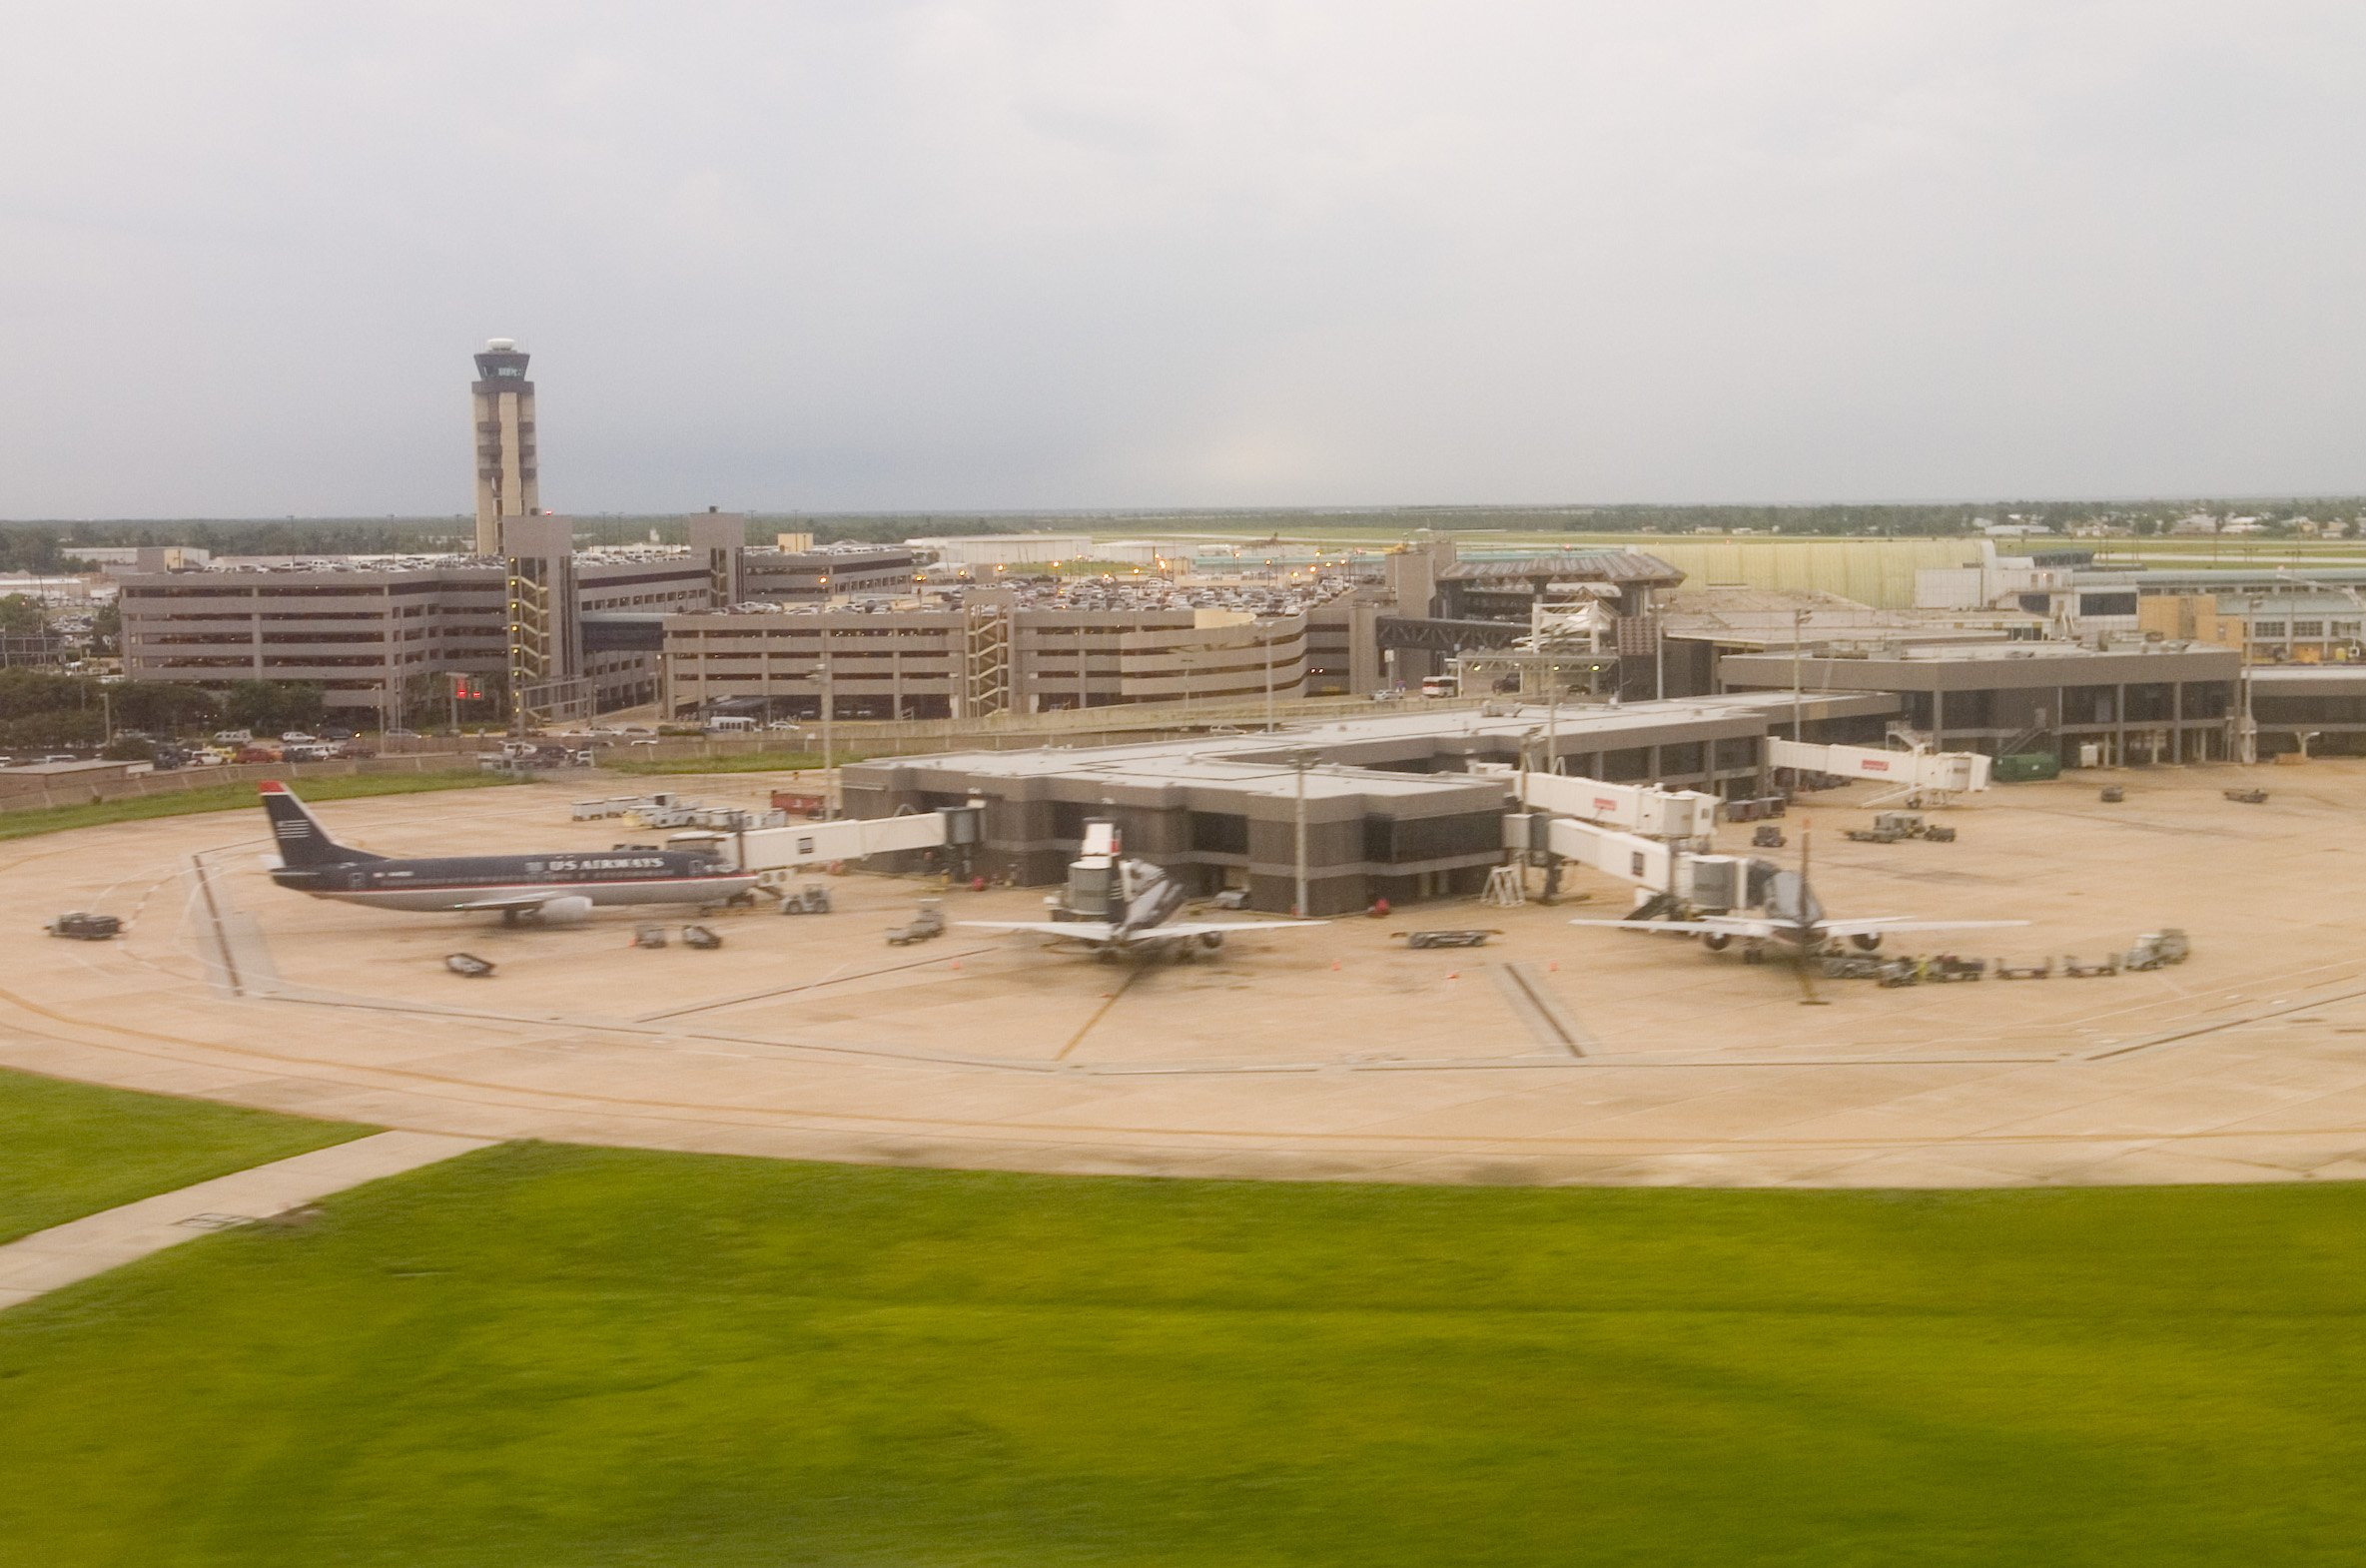 Airport Construction to Create 13,000 Jobs